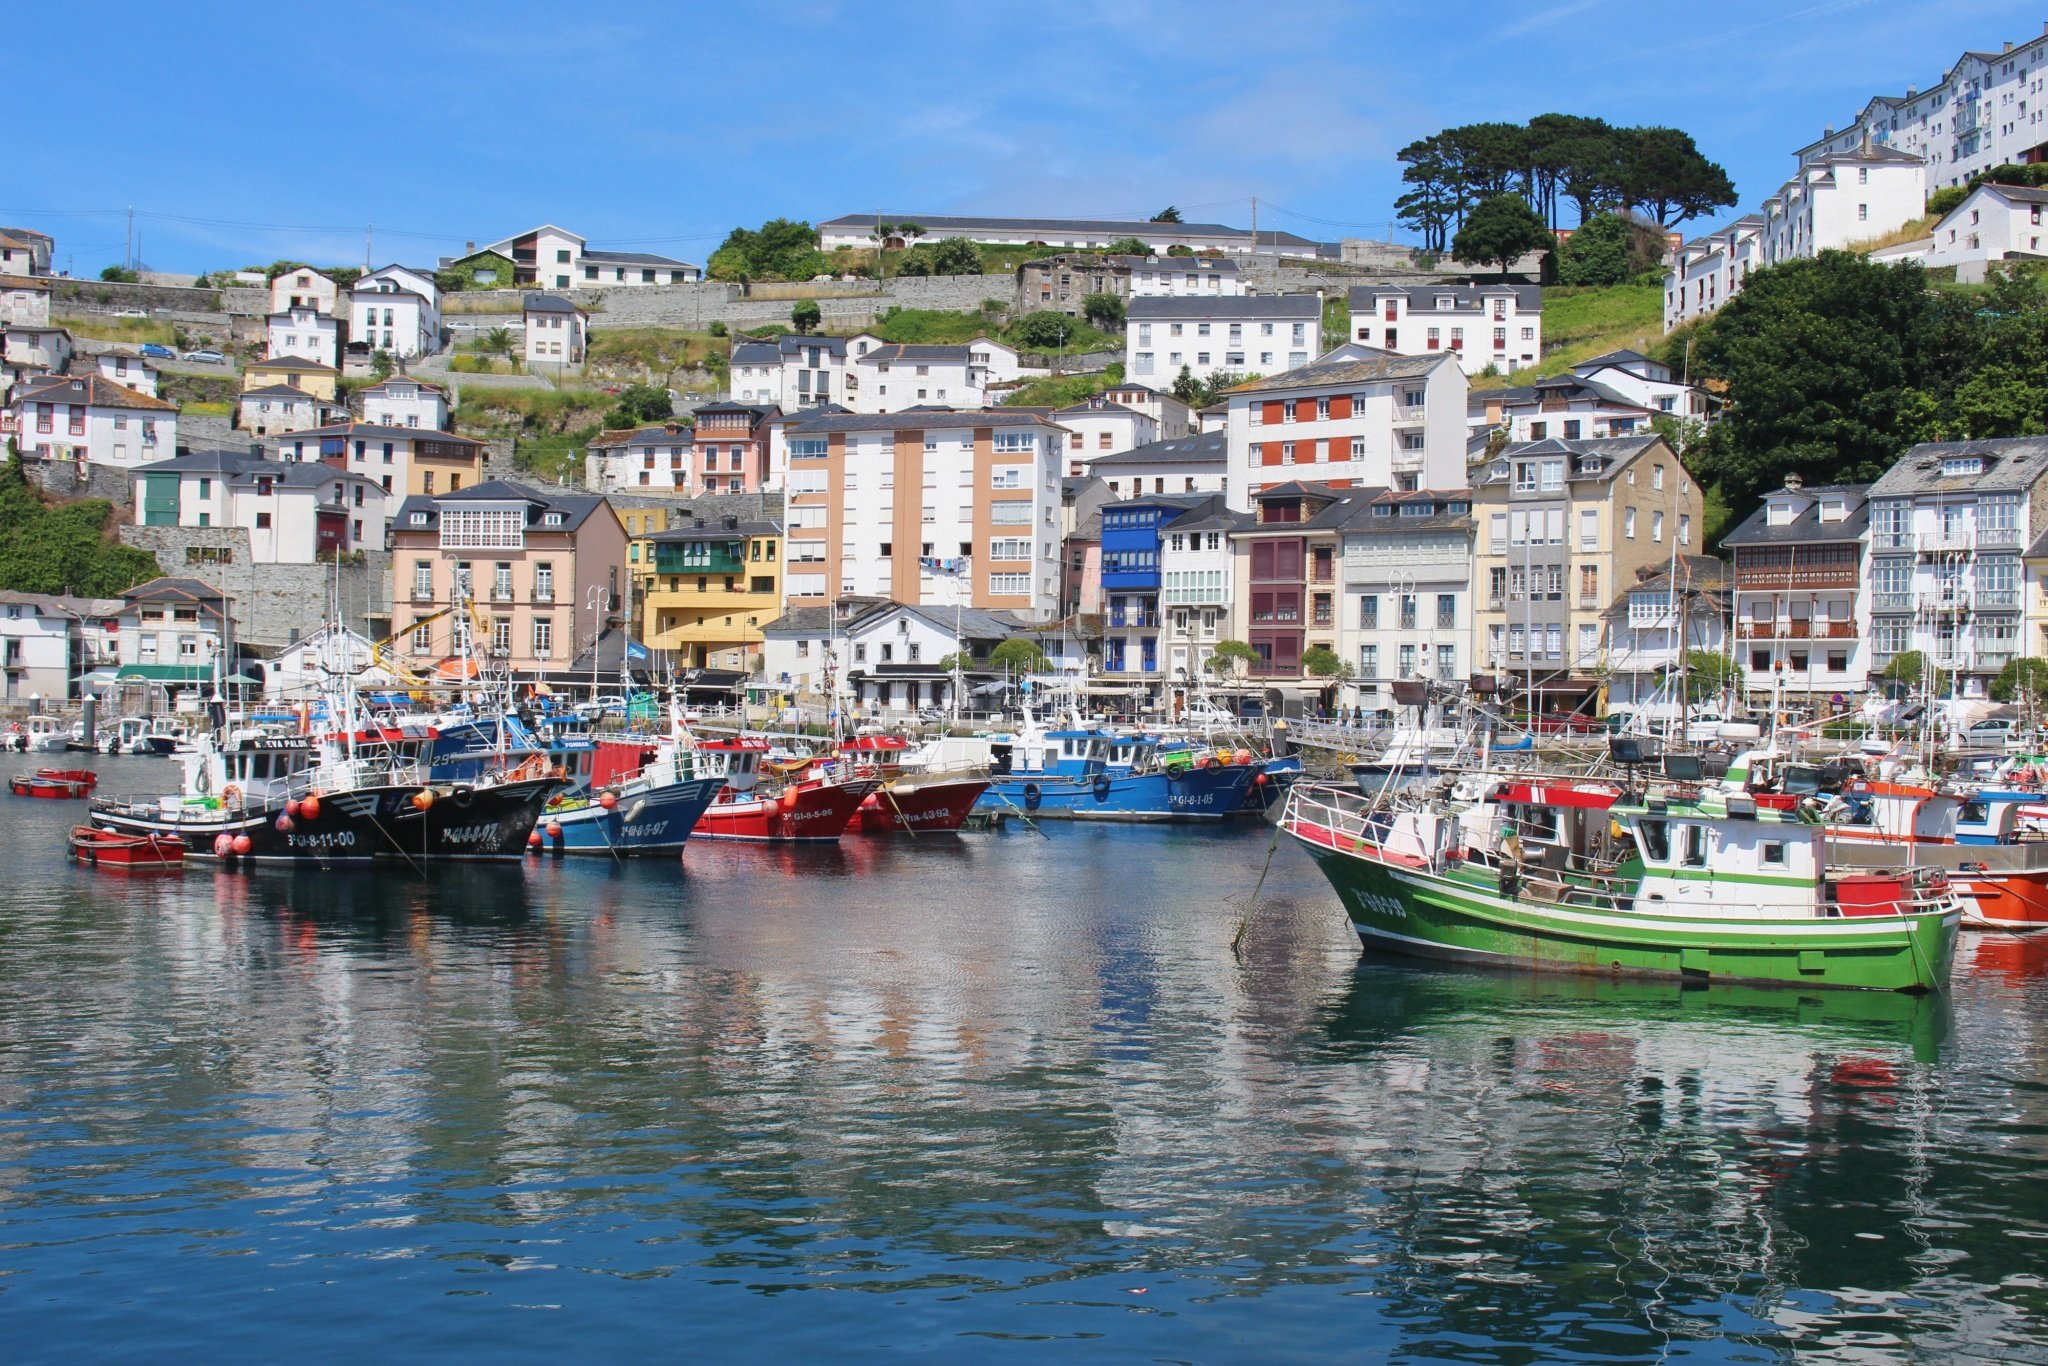 Houses and colorful boats in Luarca, Asturias, Spain